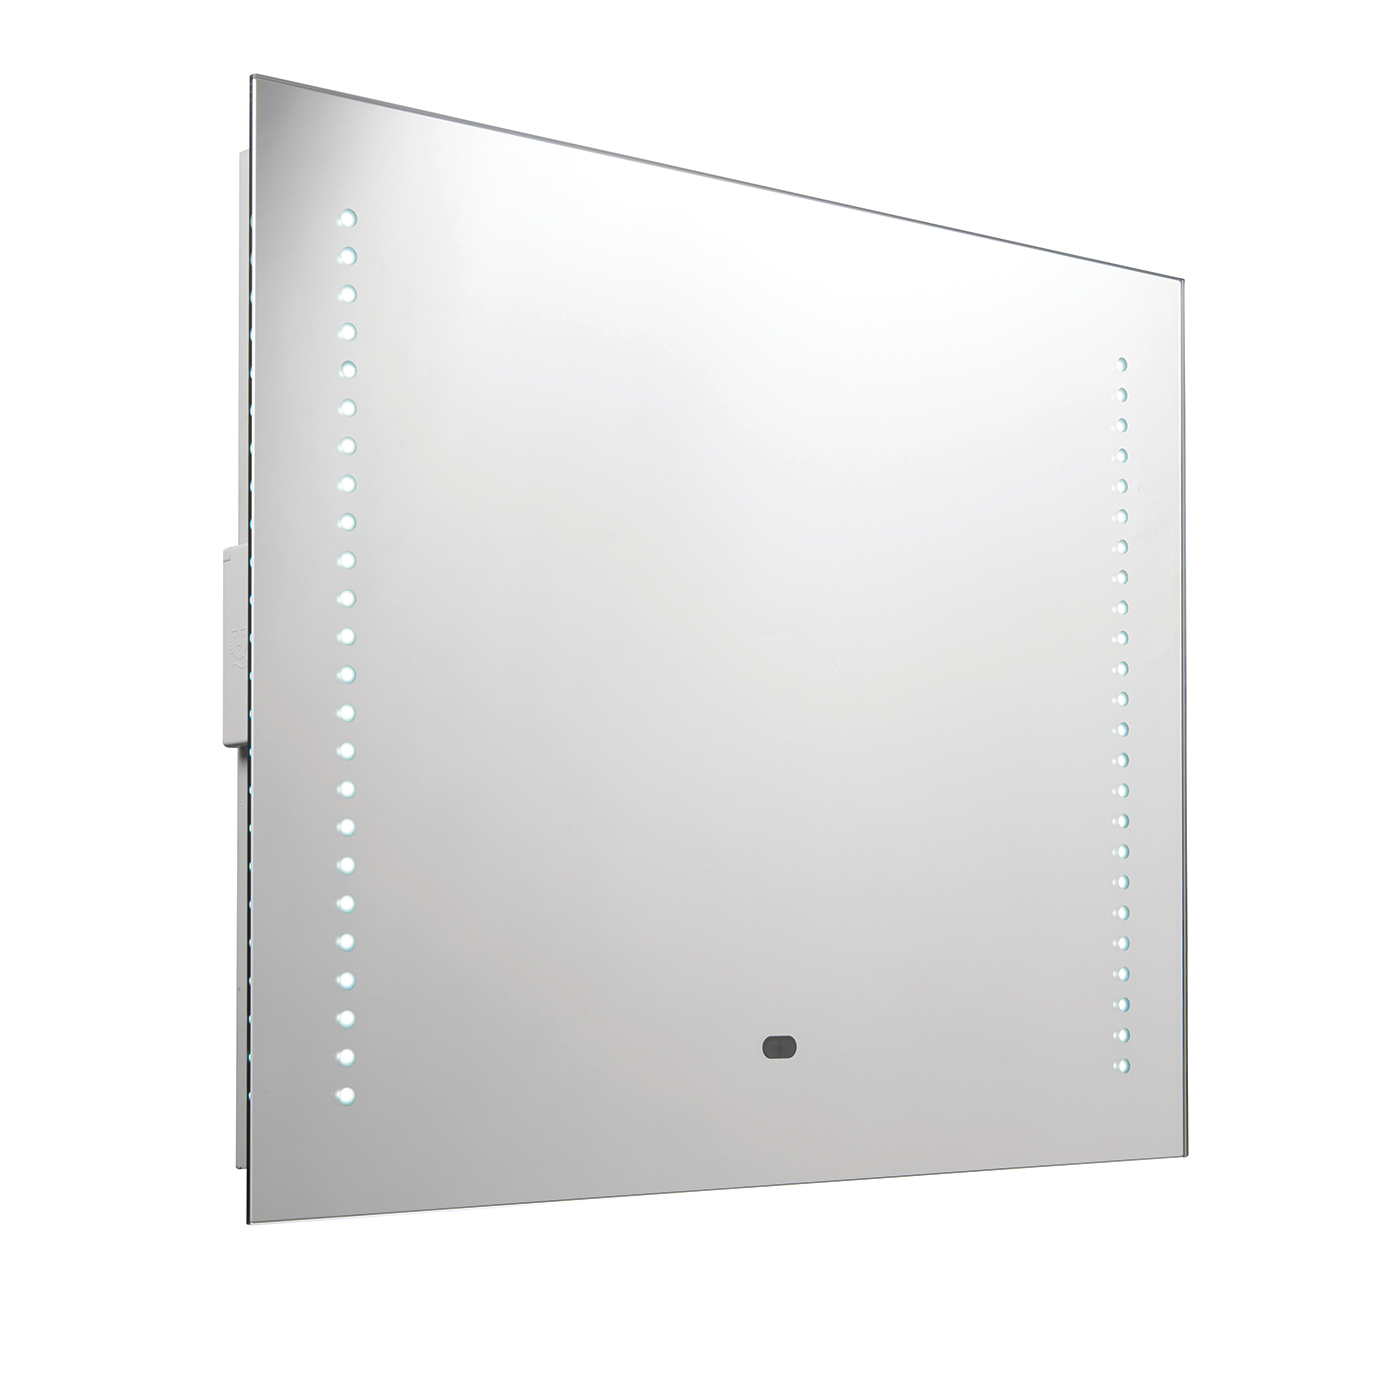 Rift RGB LED shaver bathroom mirror IP44 10W colour change H: 500mm W: 600mm Thumbnail 1